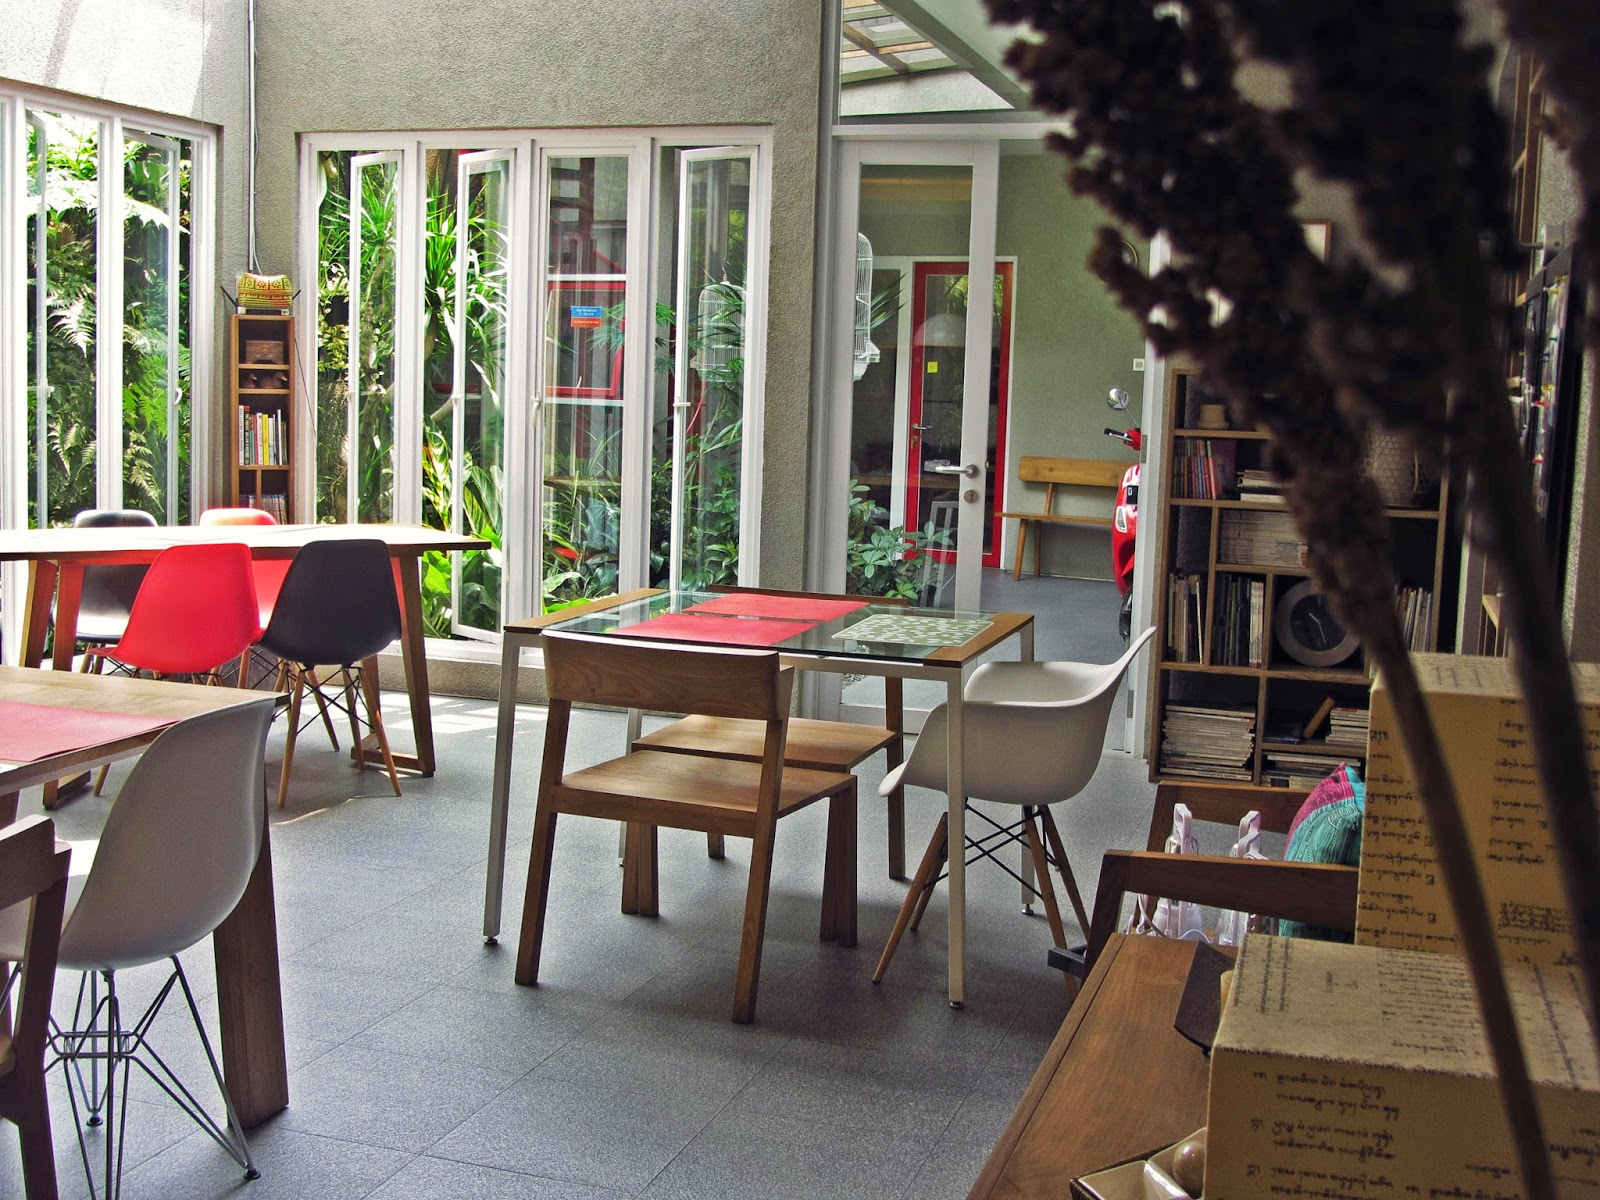 Sayana Bed and Breakfast, Sayana Bed and Breakfast Bandung, Bandung, Kota Bandung, Dolan Dolen, Dolaners Sayana Bed and Breakfast via ganti - Dolan Dolen